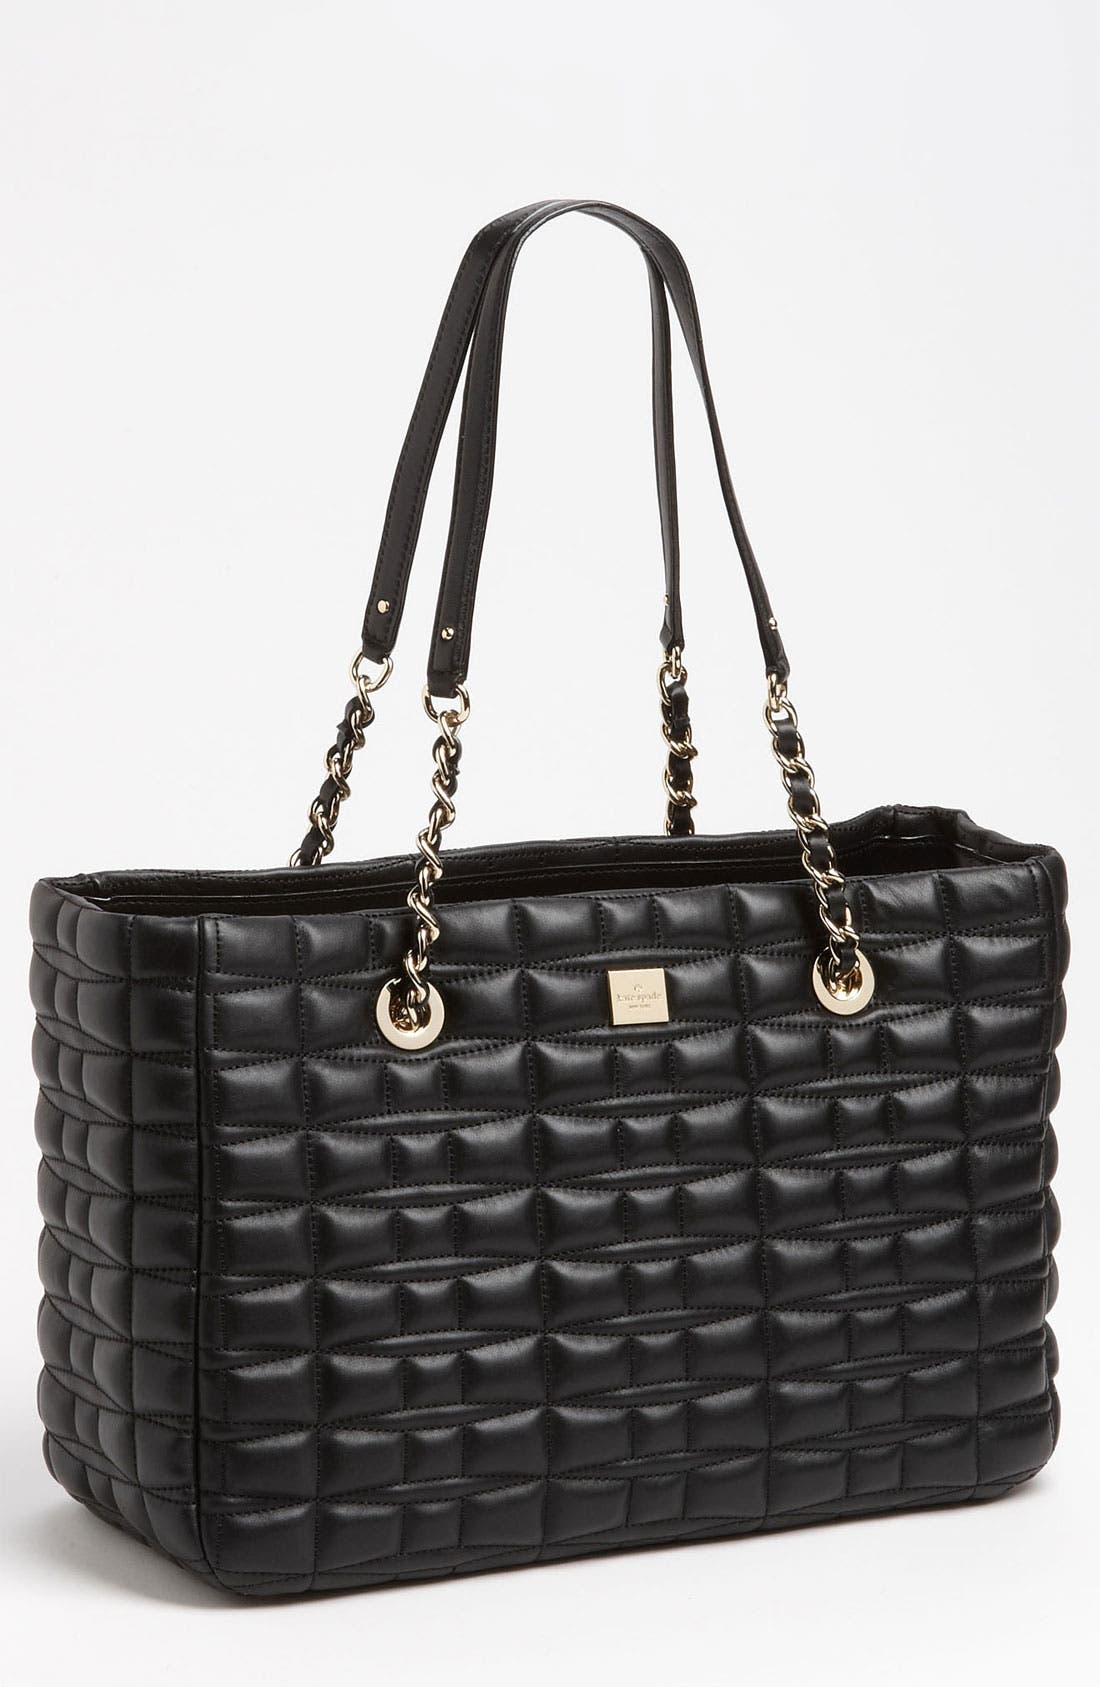 Alternate Image 1 Selected - kate spade new york 'signature spade - jane' shoulder bag